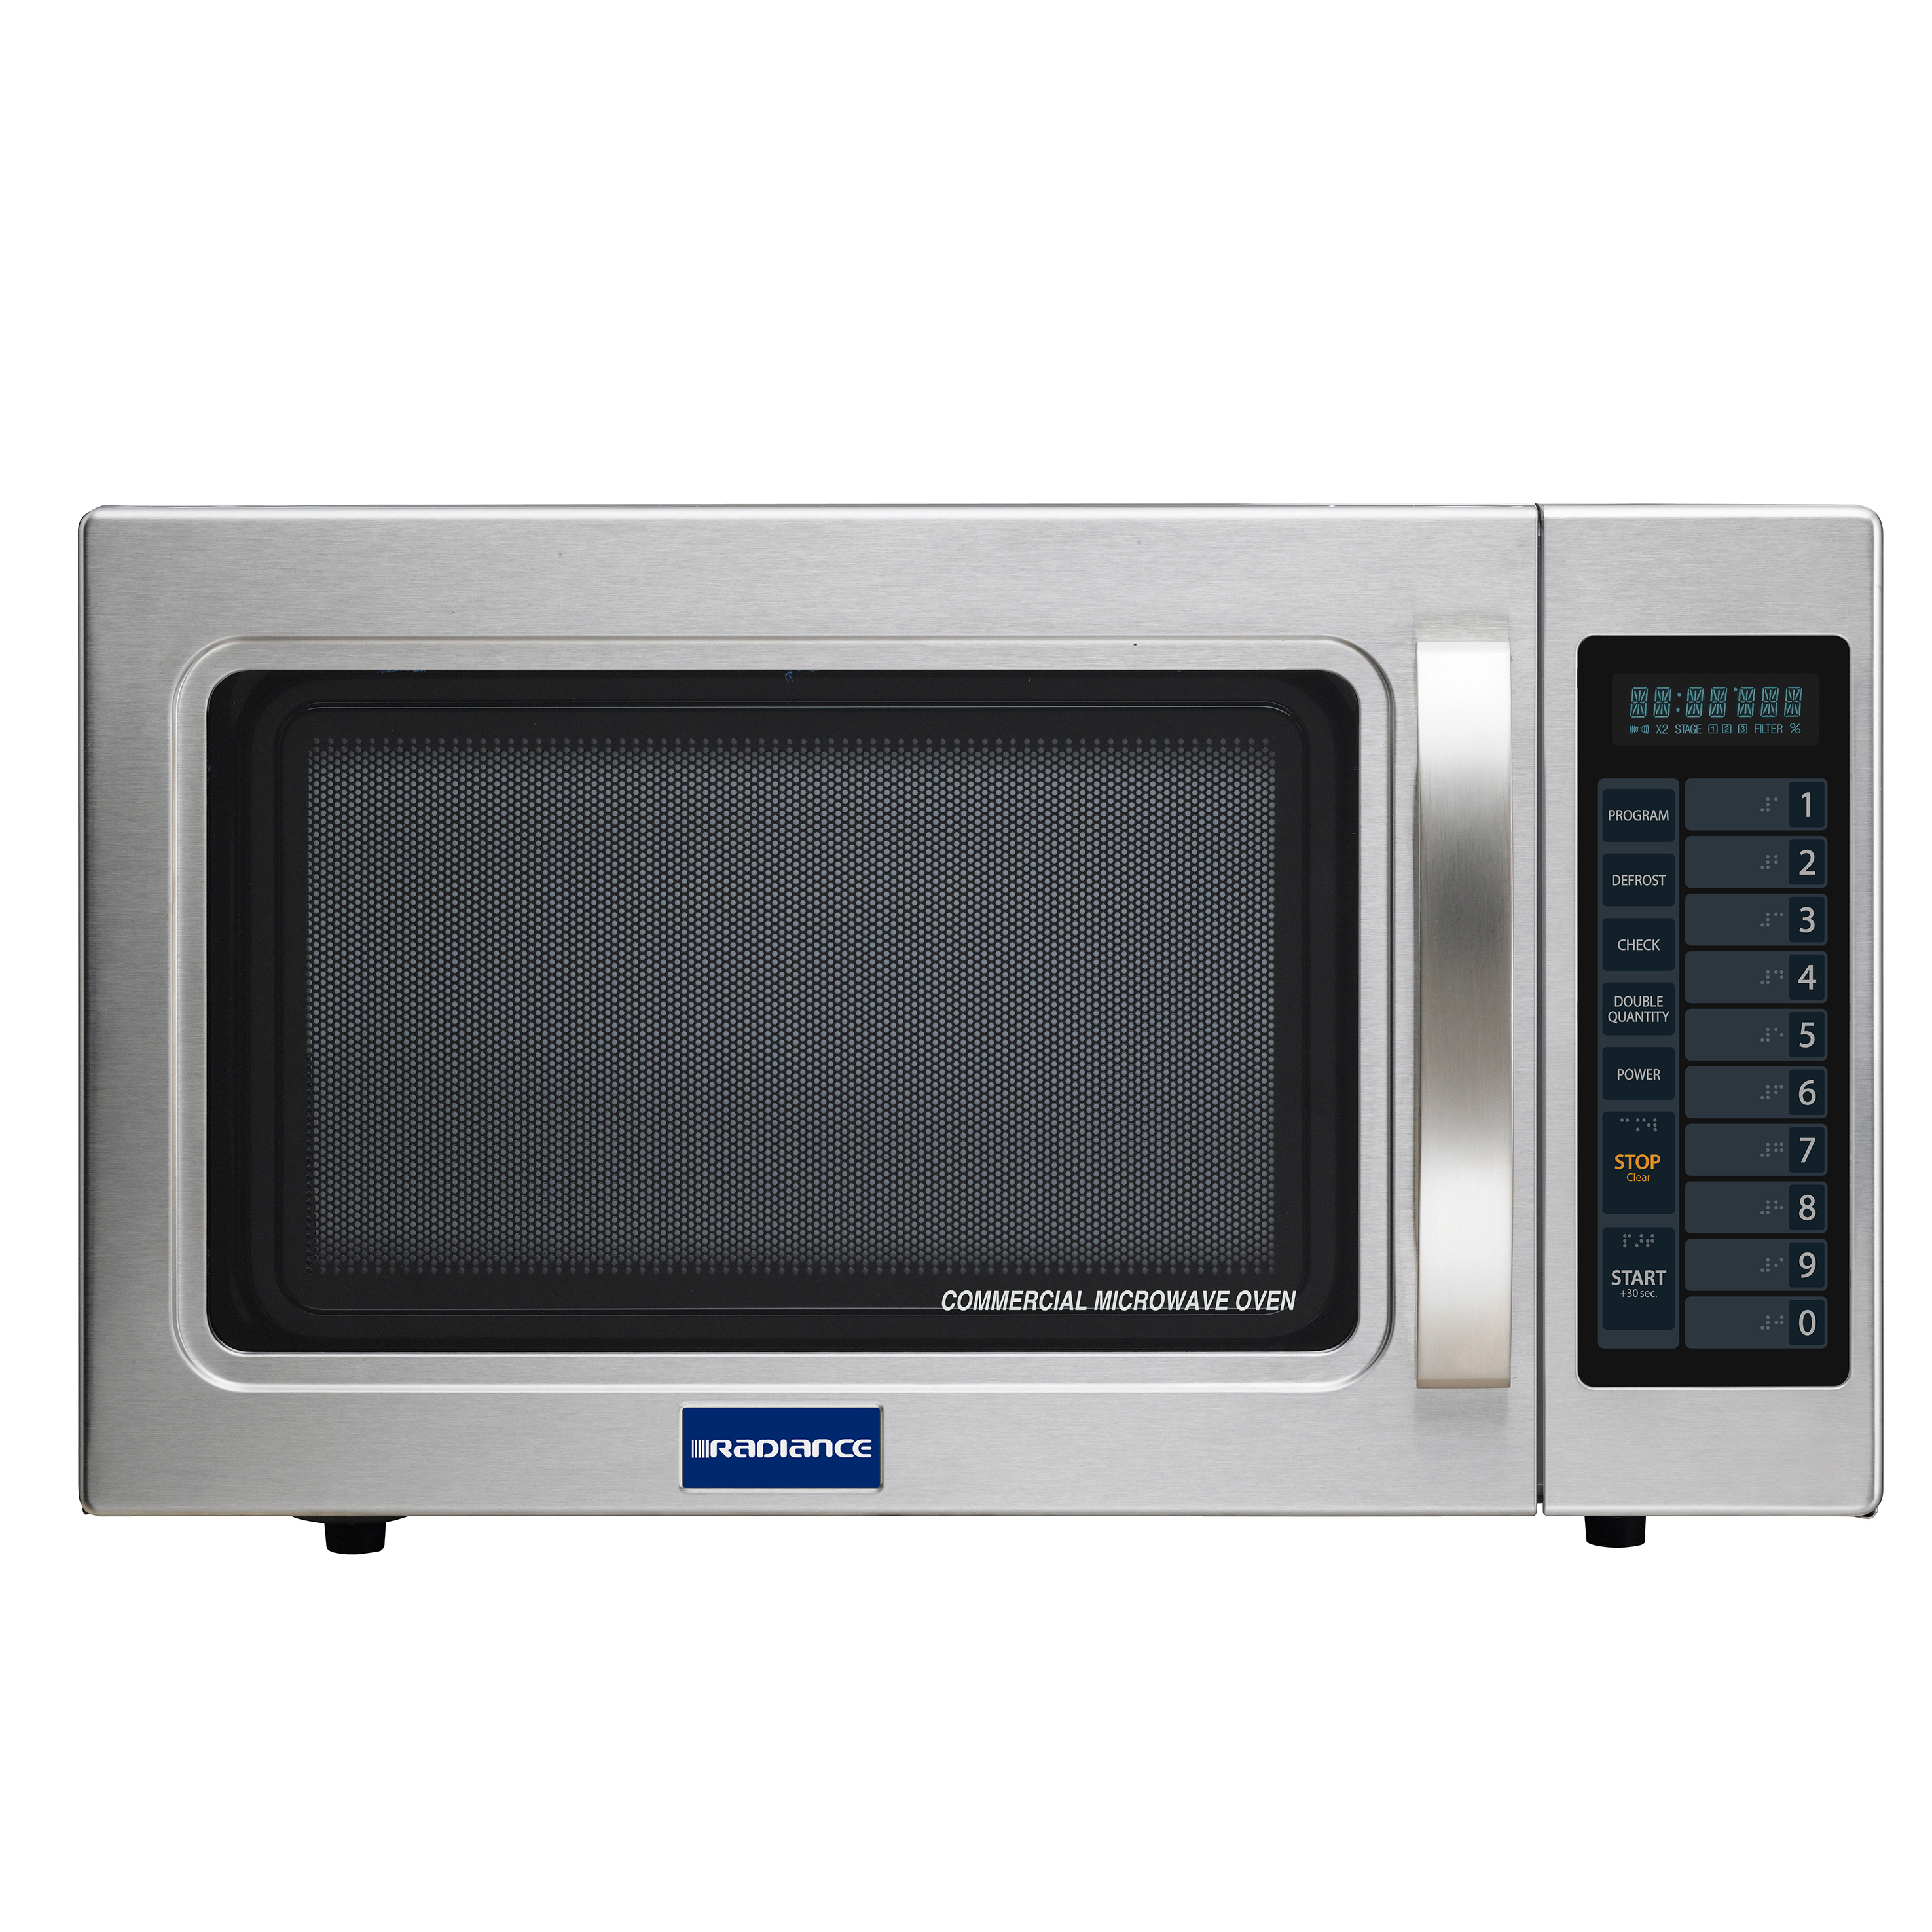 Turbo Air TMW-1100NE microwave oven